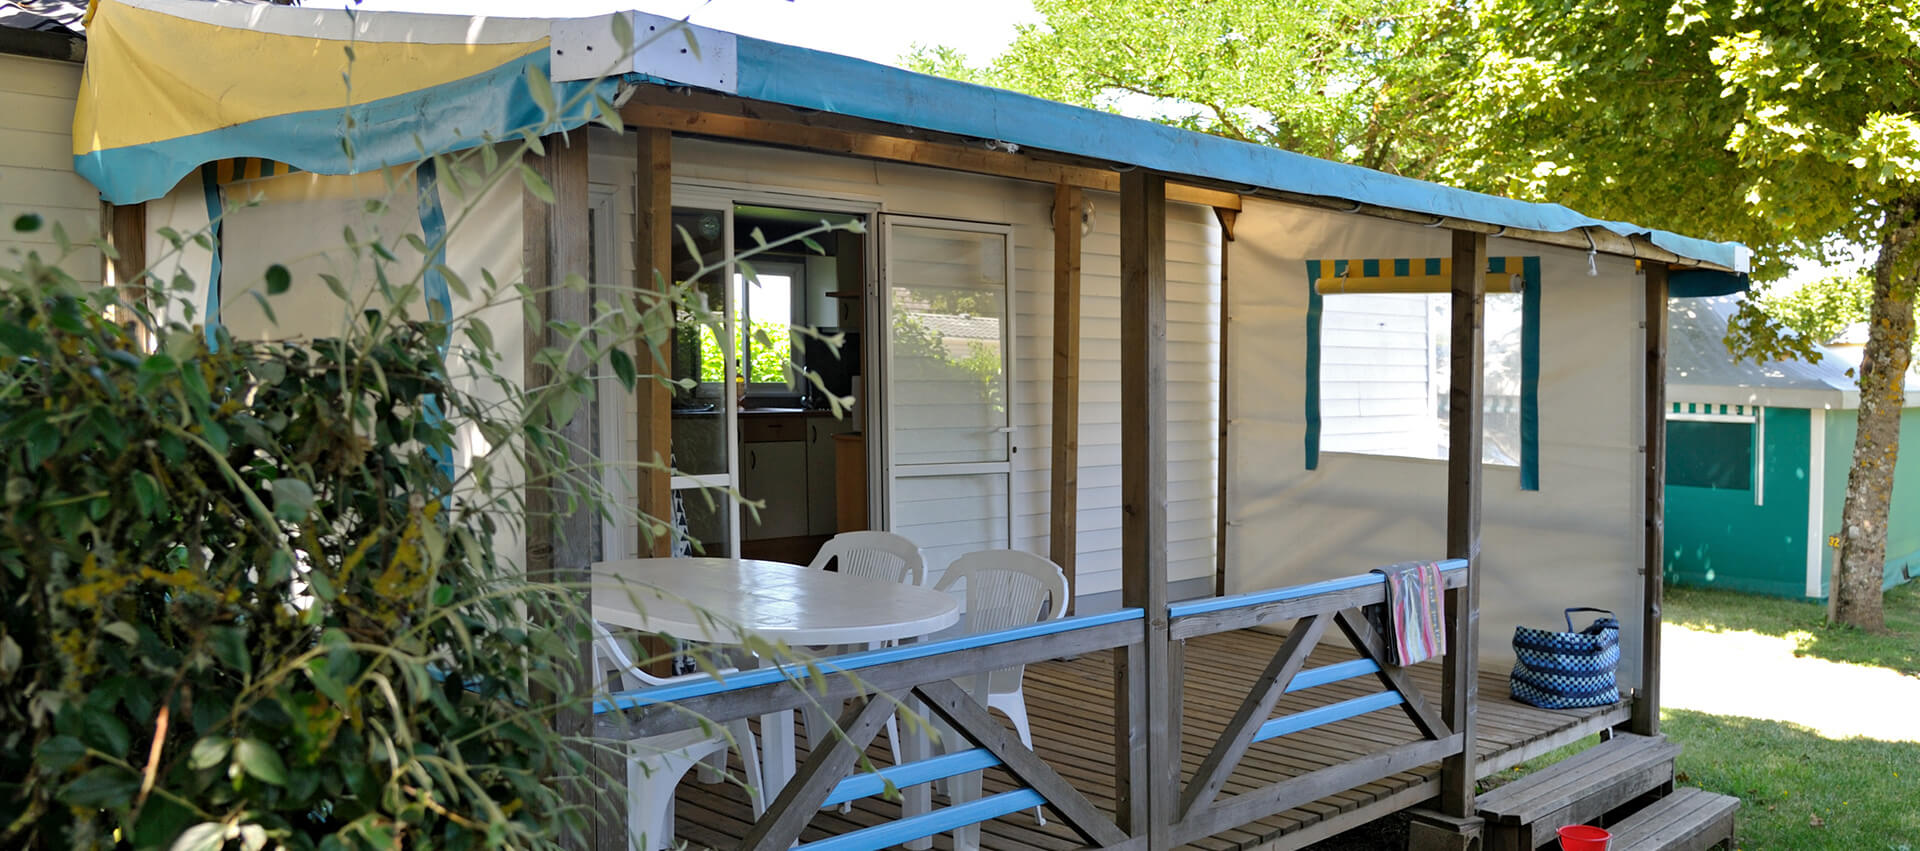 Bleuet mobile home 4 people up for rental located in Aveyron